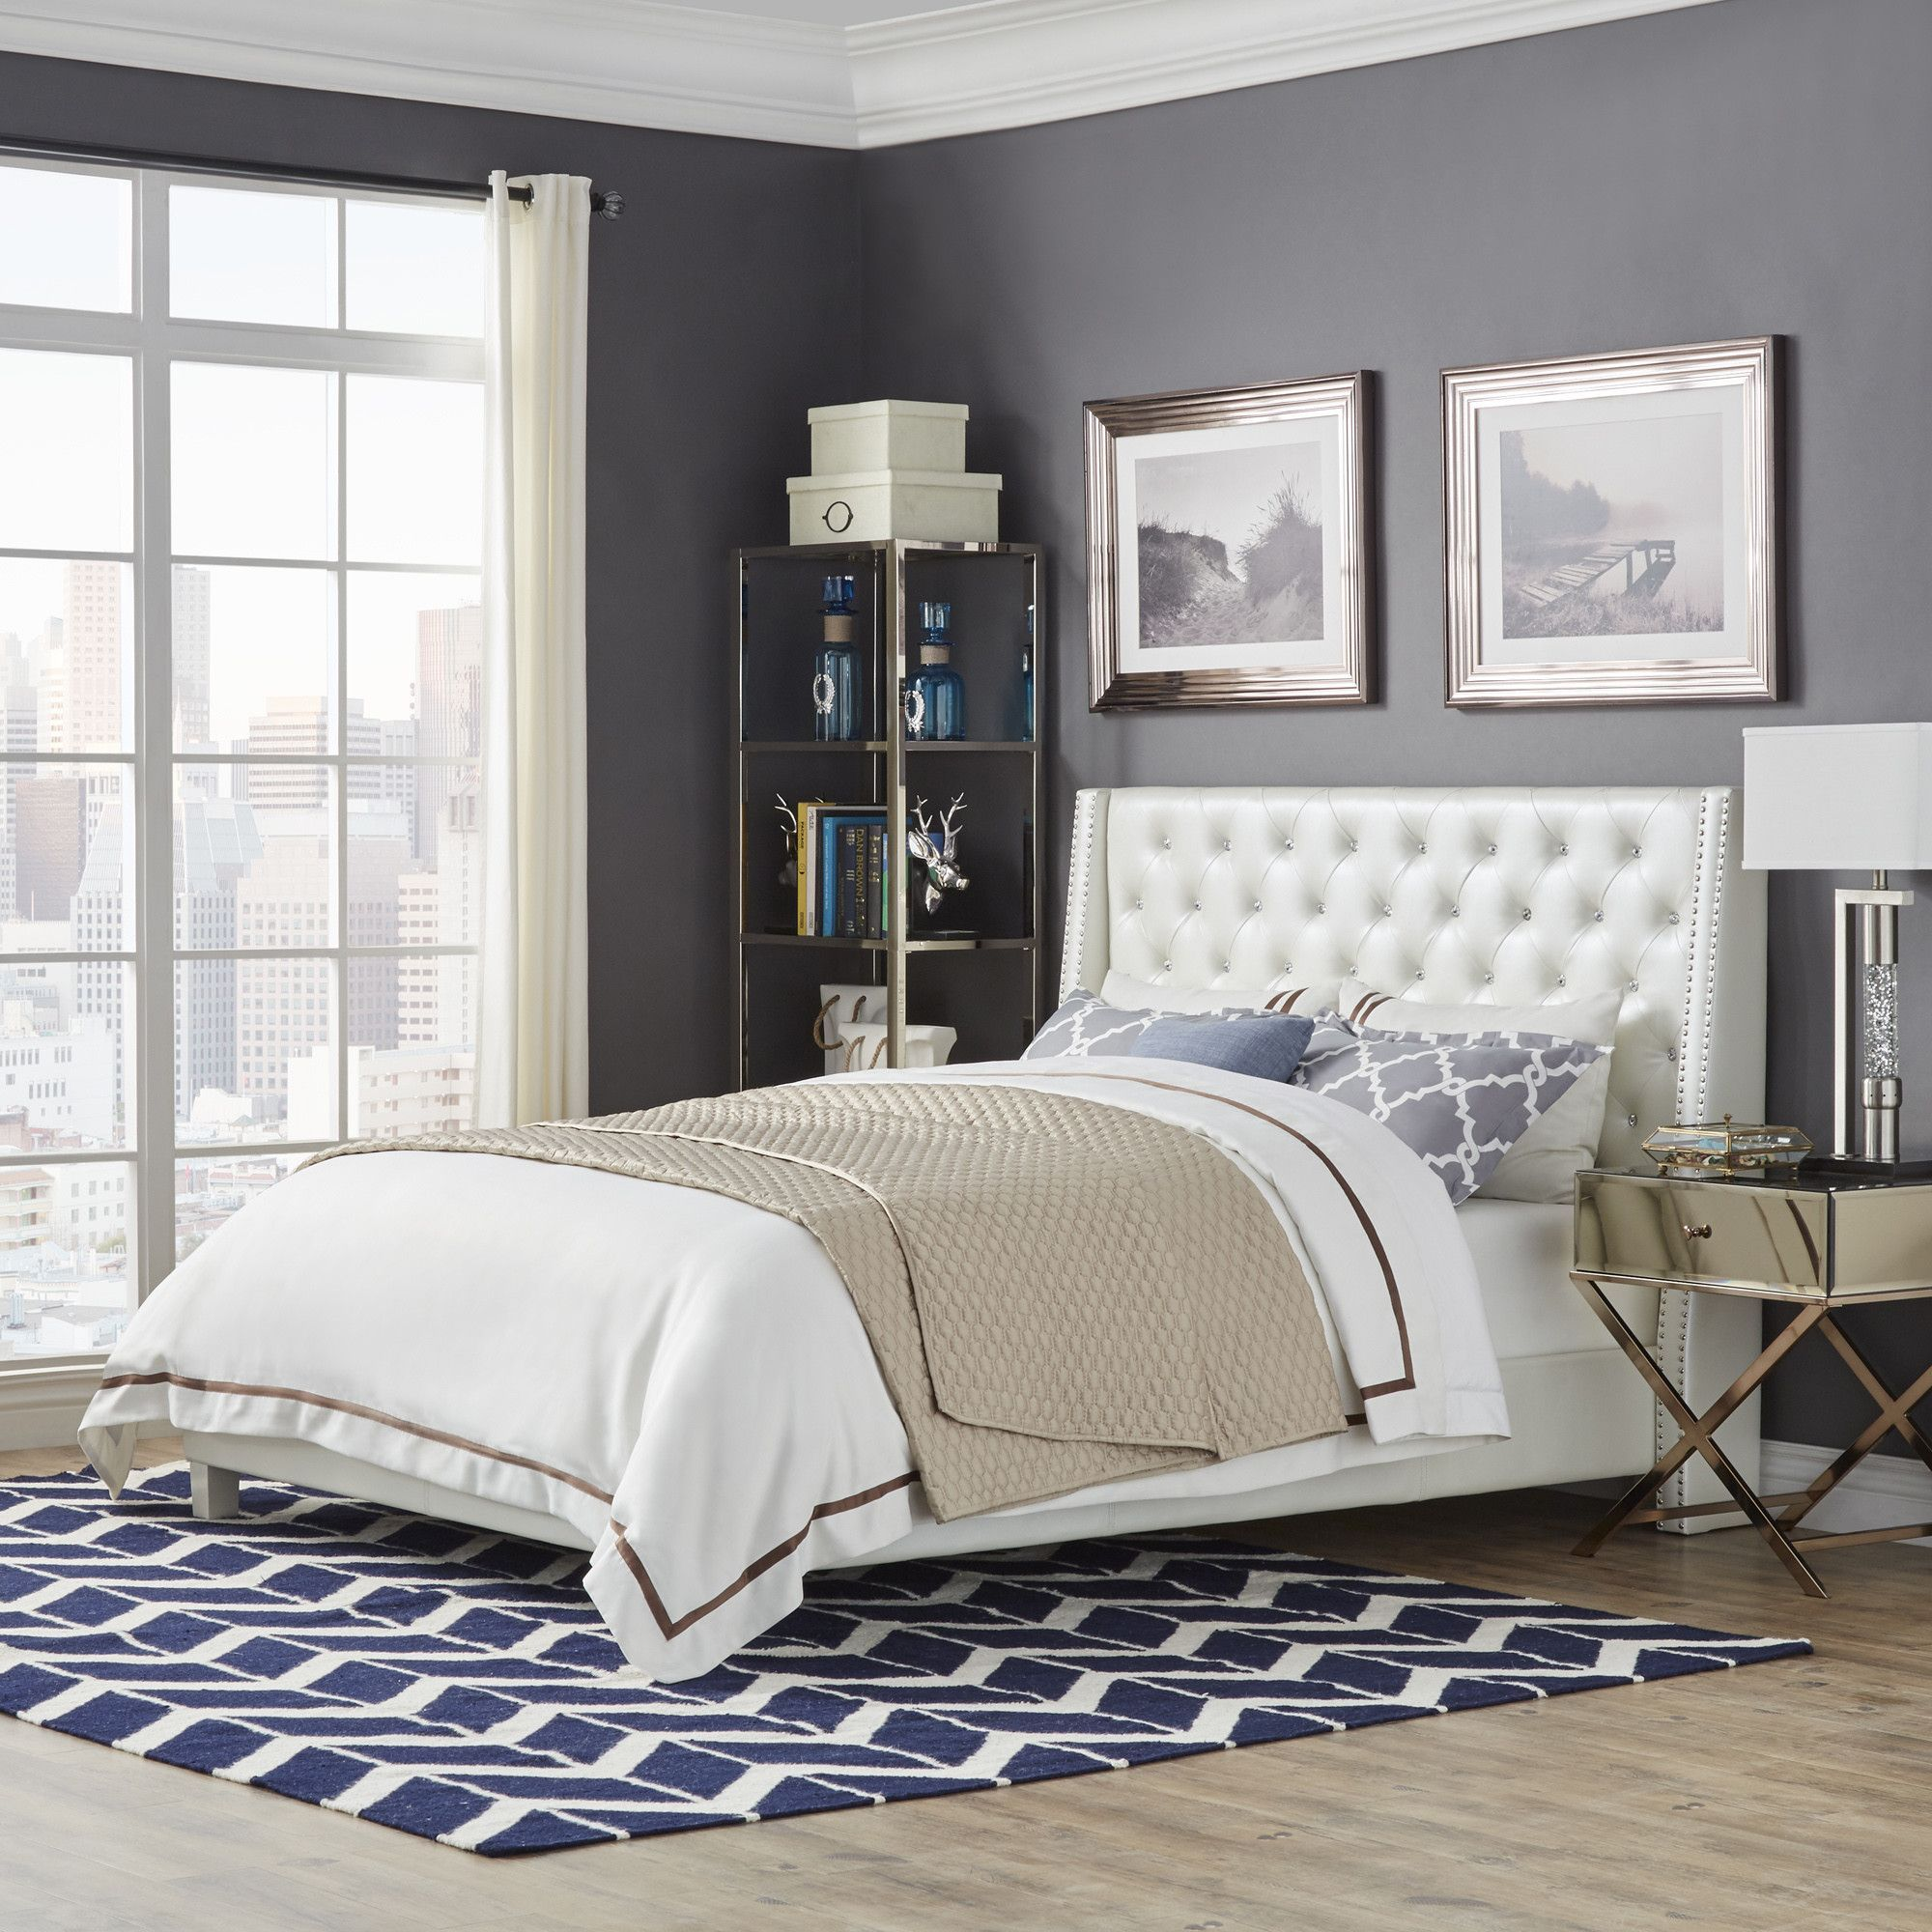 Pixie Castle Upholstered Bed Relaxing bedroom